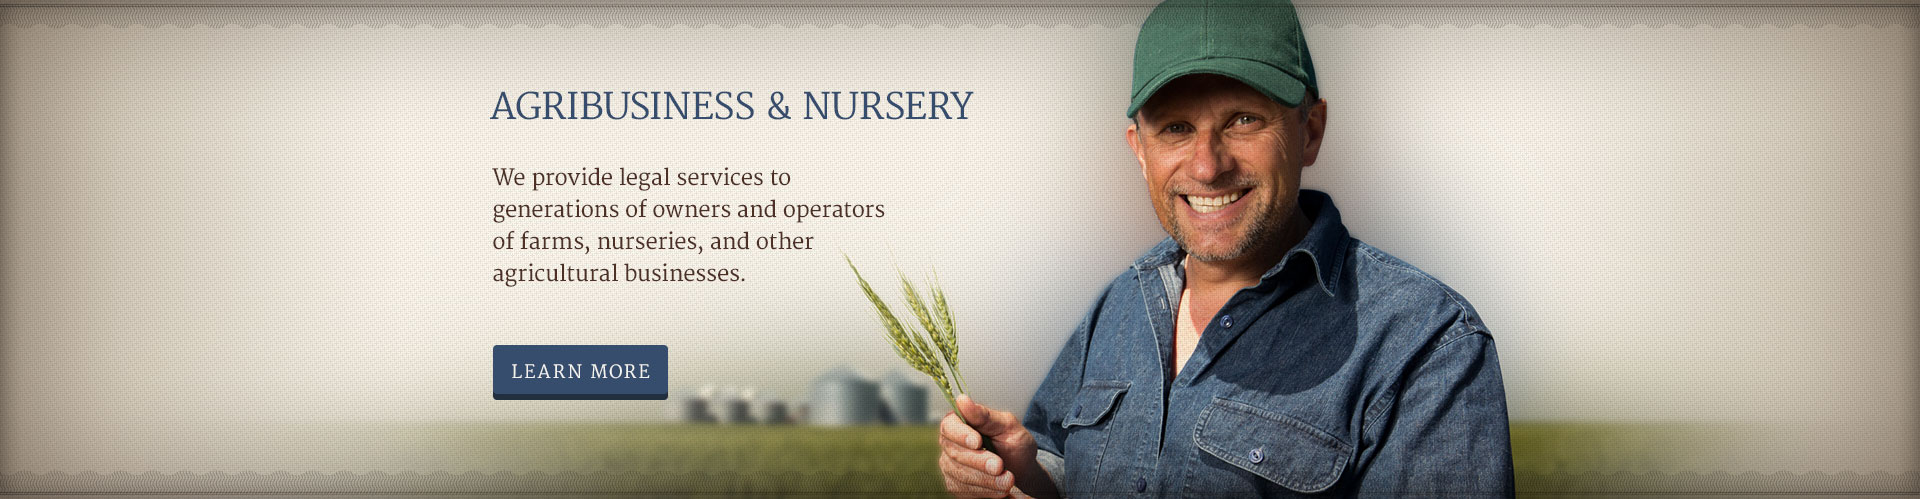 banner-agribusiness-and-nursery